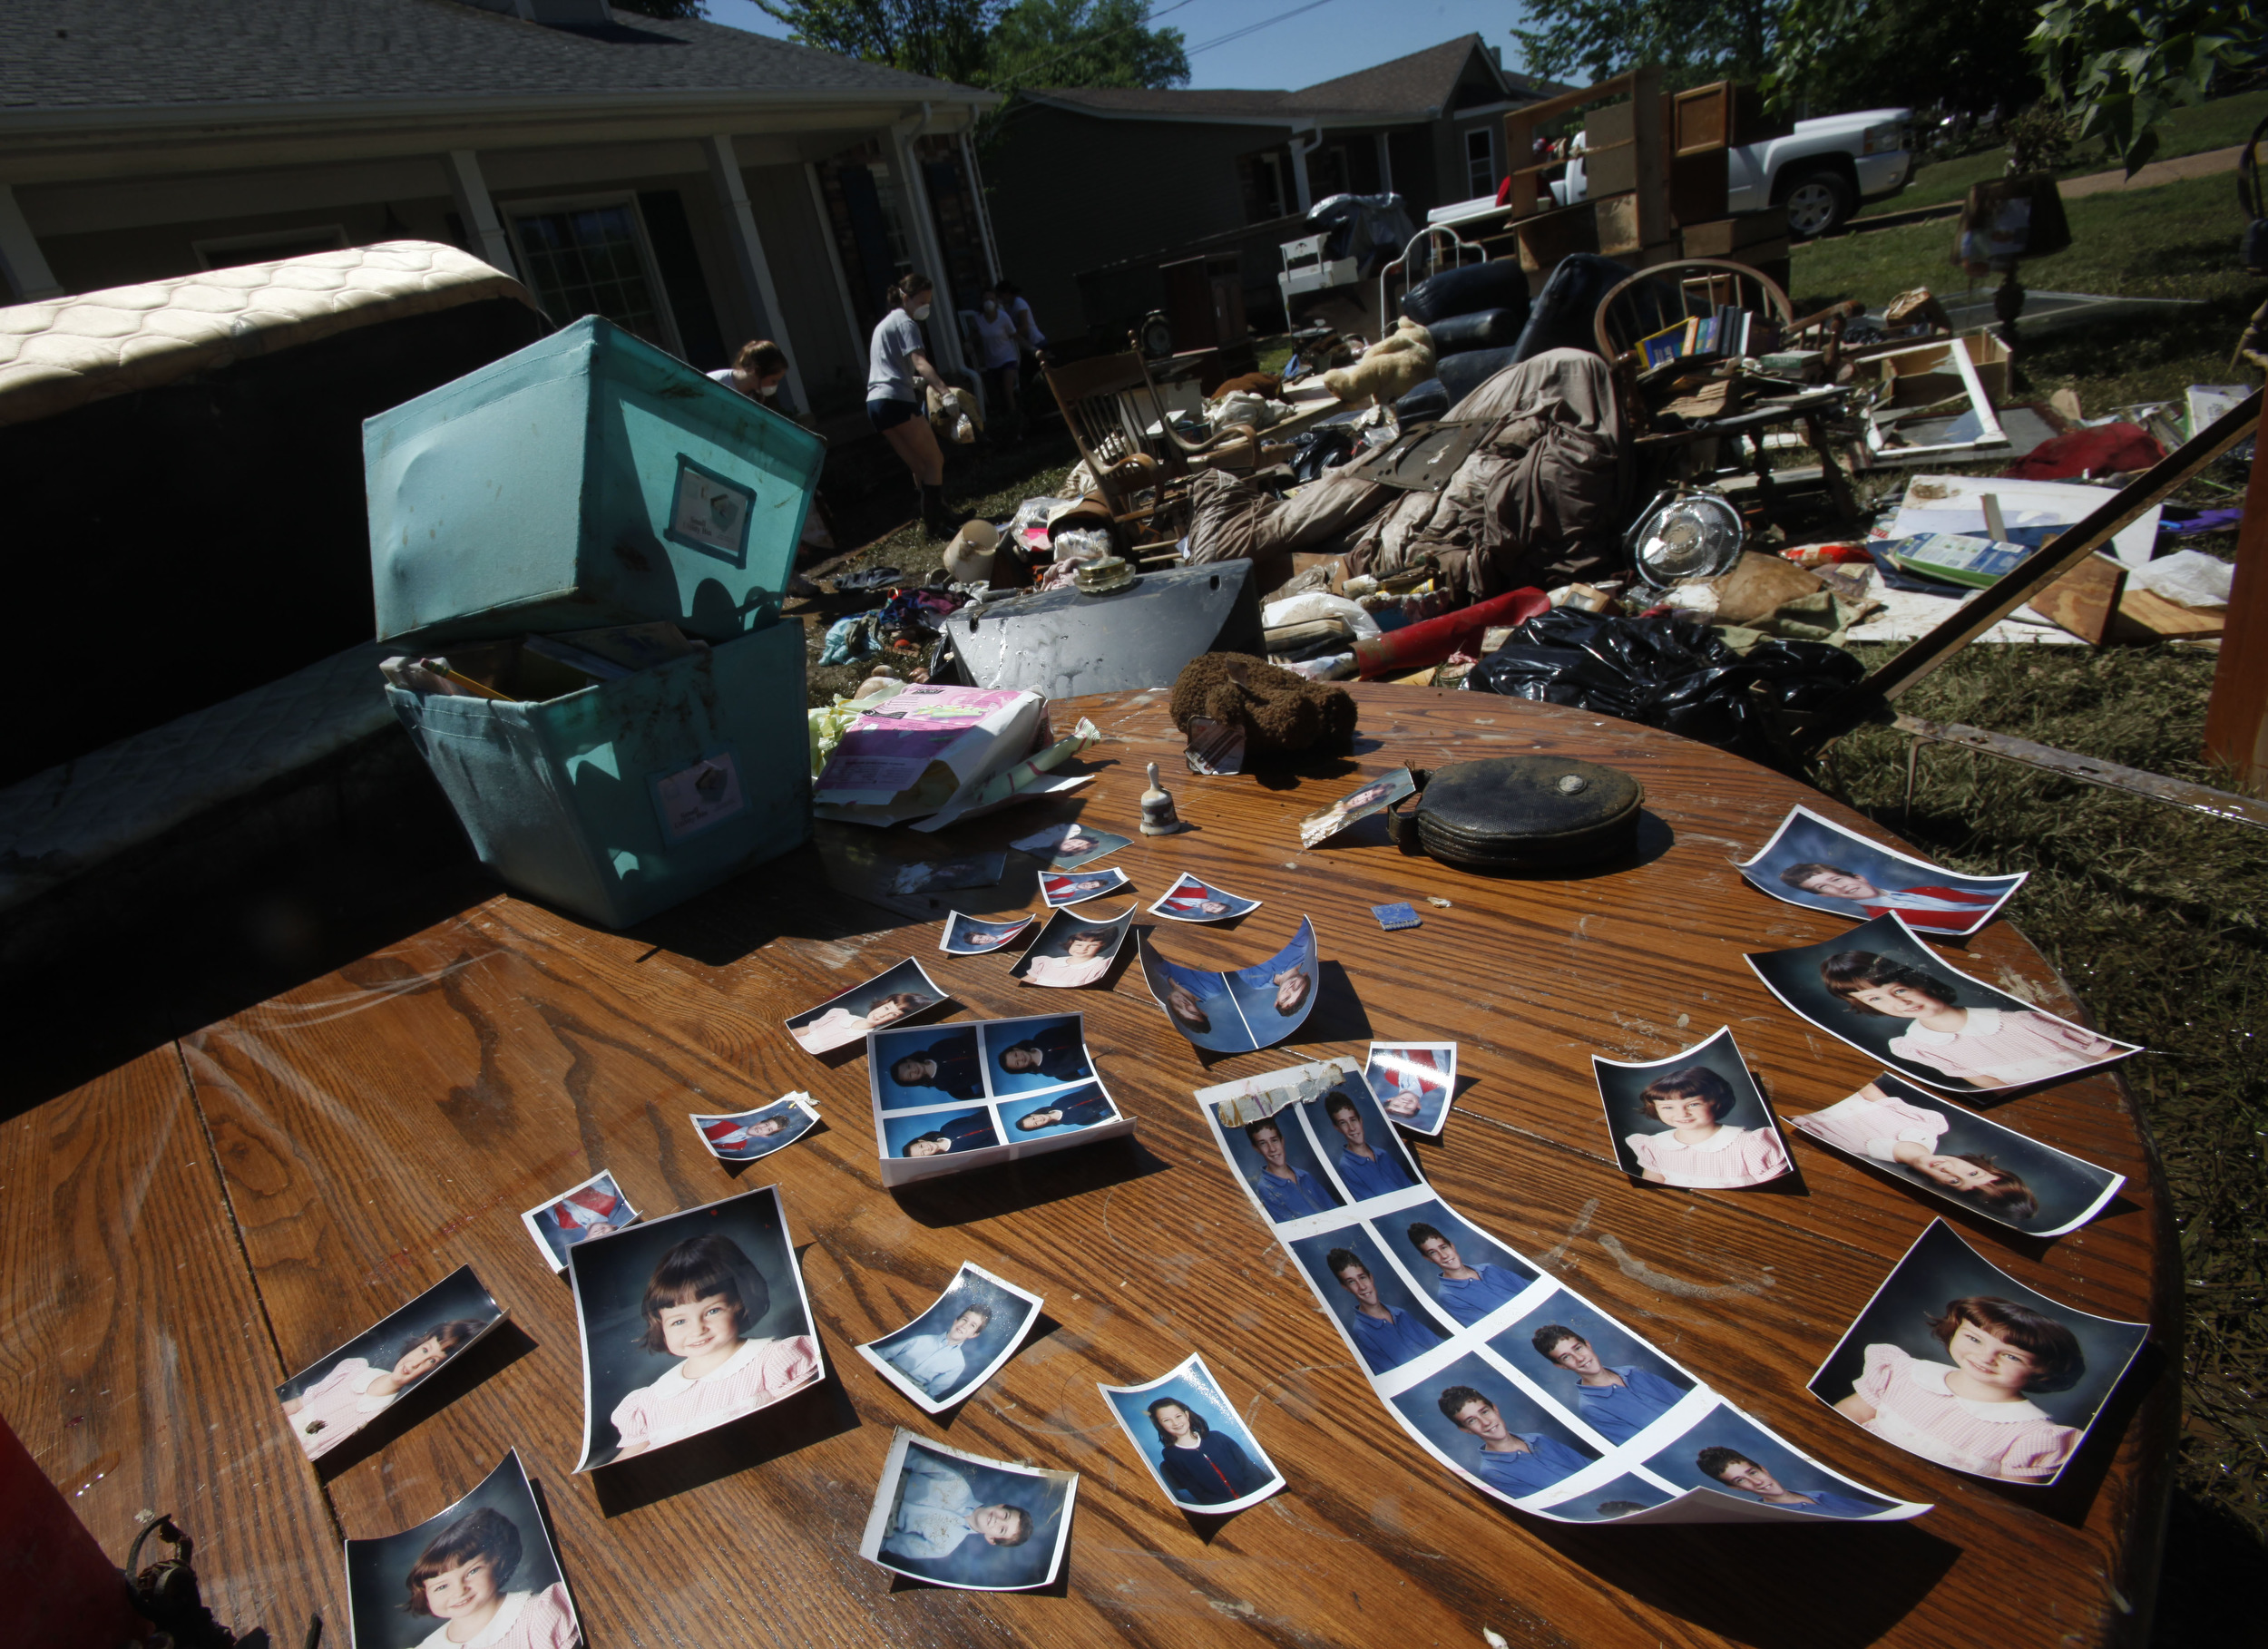 Recovered family photos at Allison Patton's house on Beech Bend Drive May 4, 2010 in Nashville, Tenn.